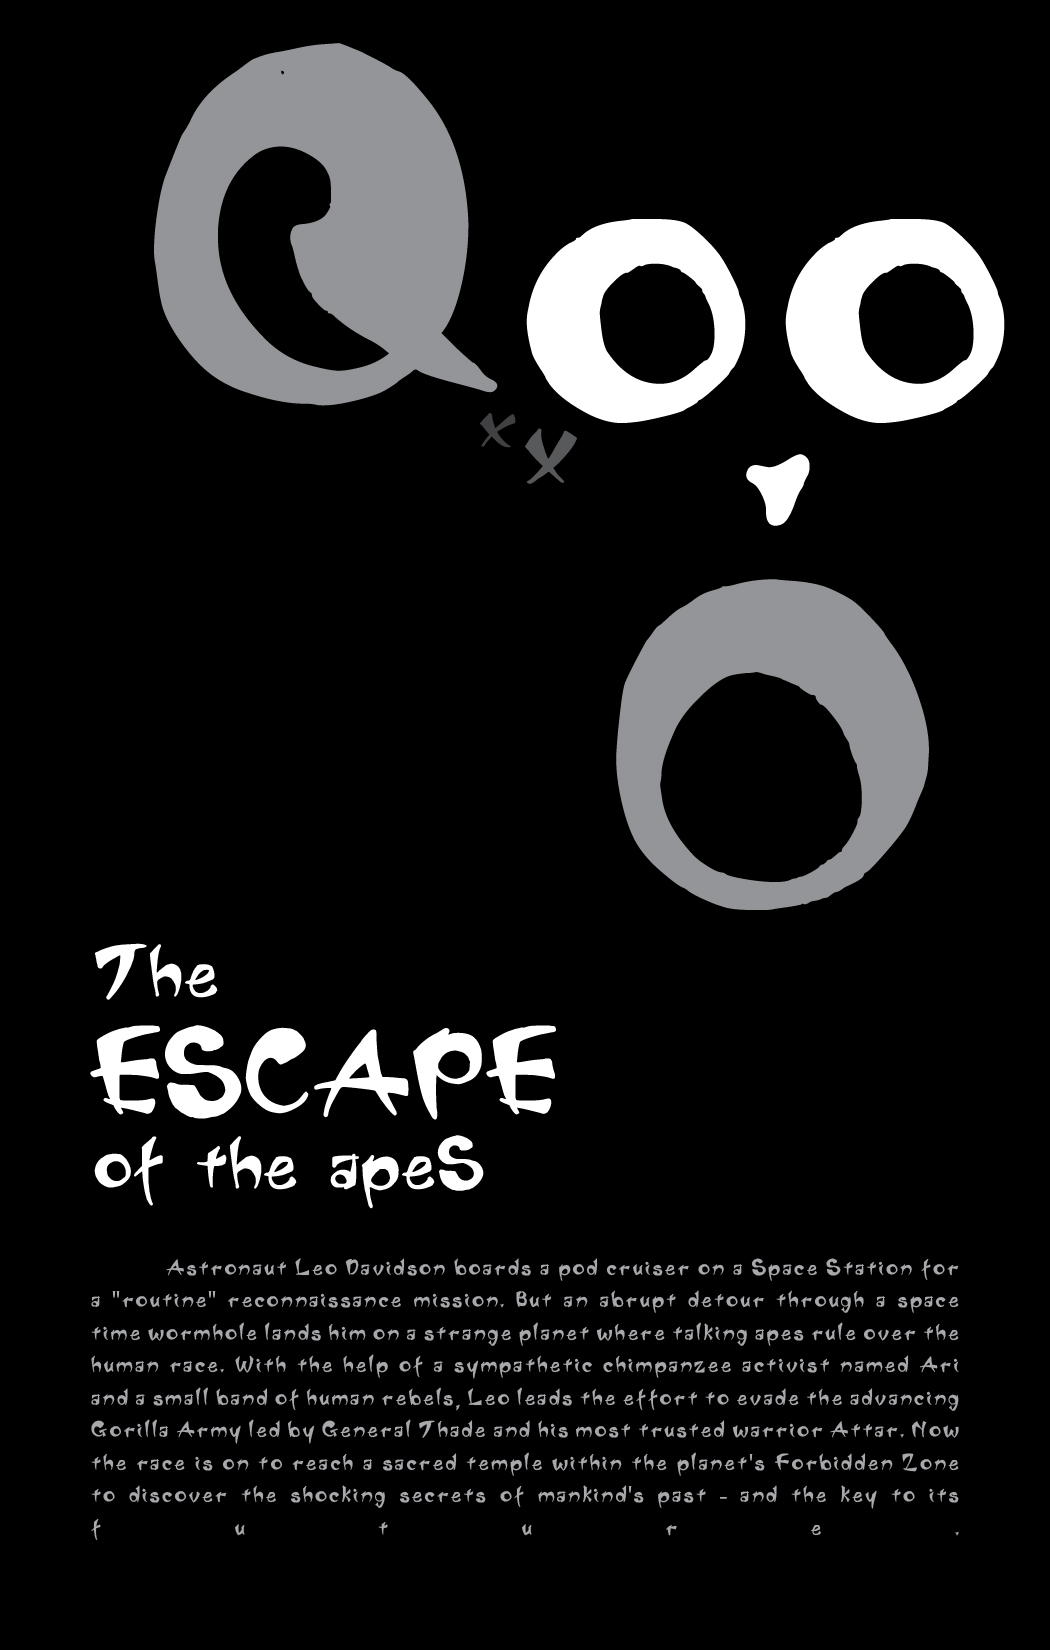 Escape Font - Poster size: 11 x 17 (inch)This poster was made to promo the new font Escape. The idea for the poster is inspired by the movie